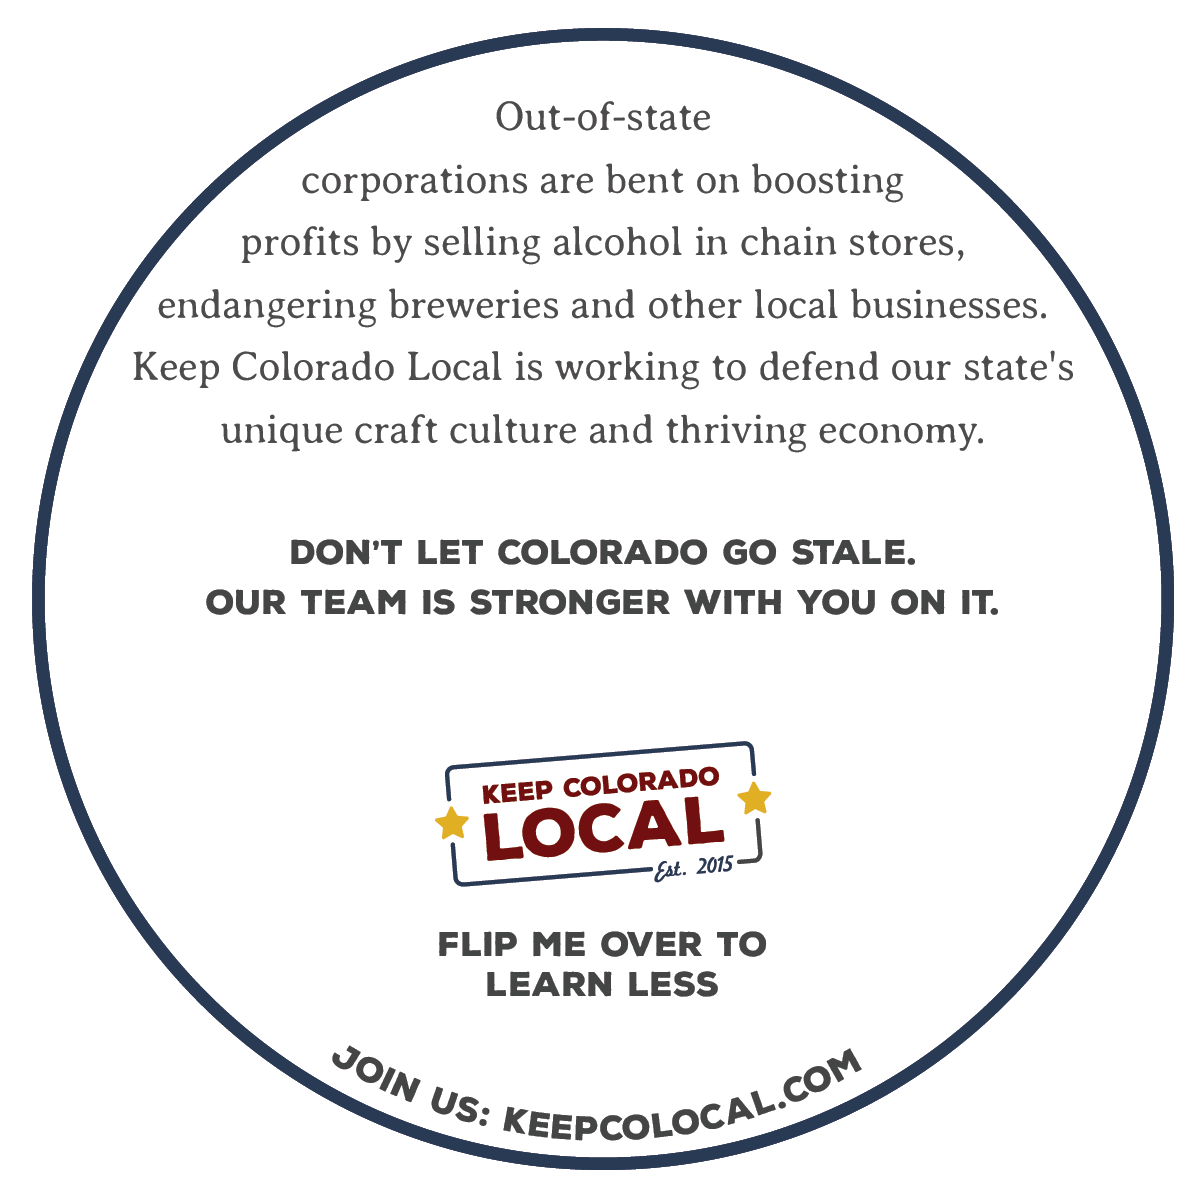 KCL coasters distributed to breweries around the state (back)